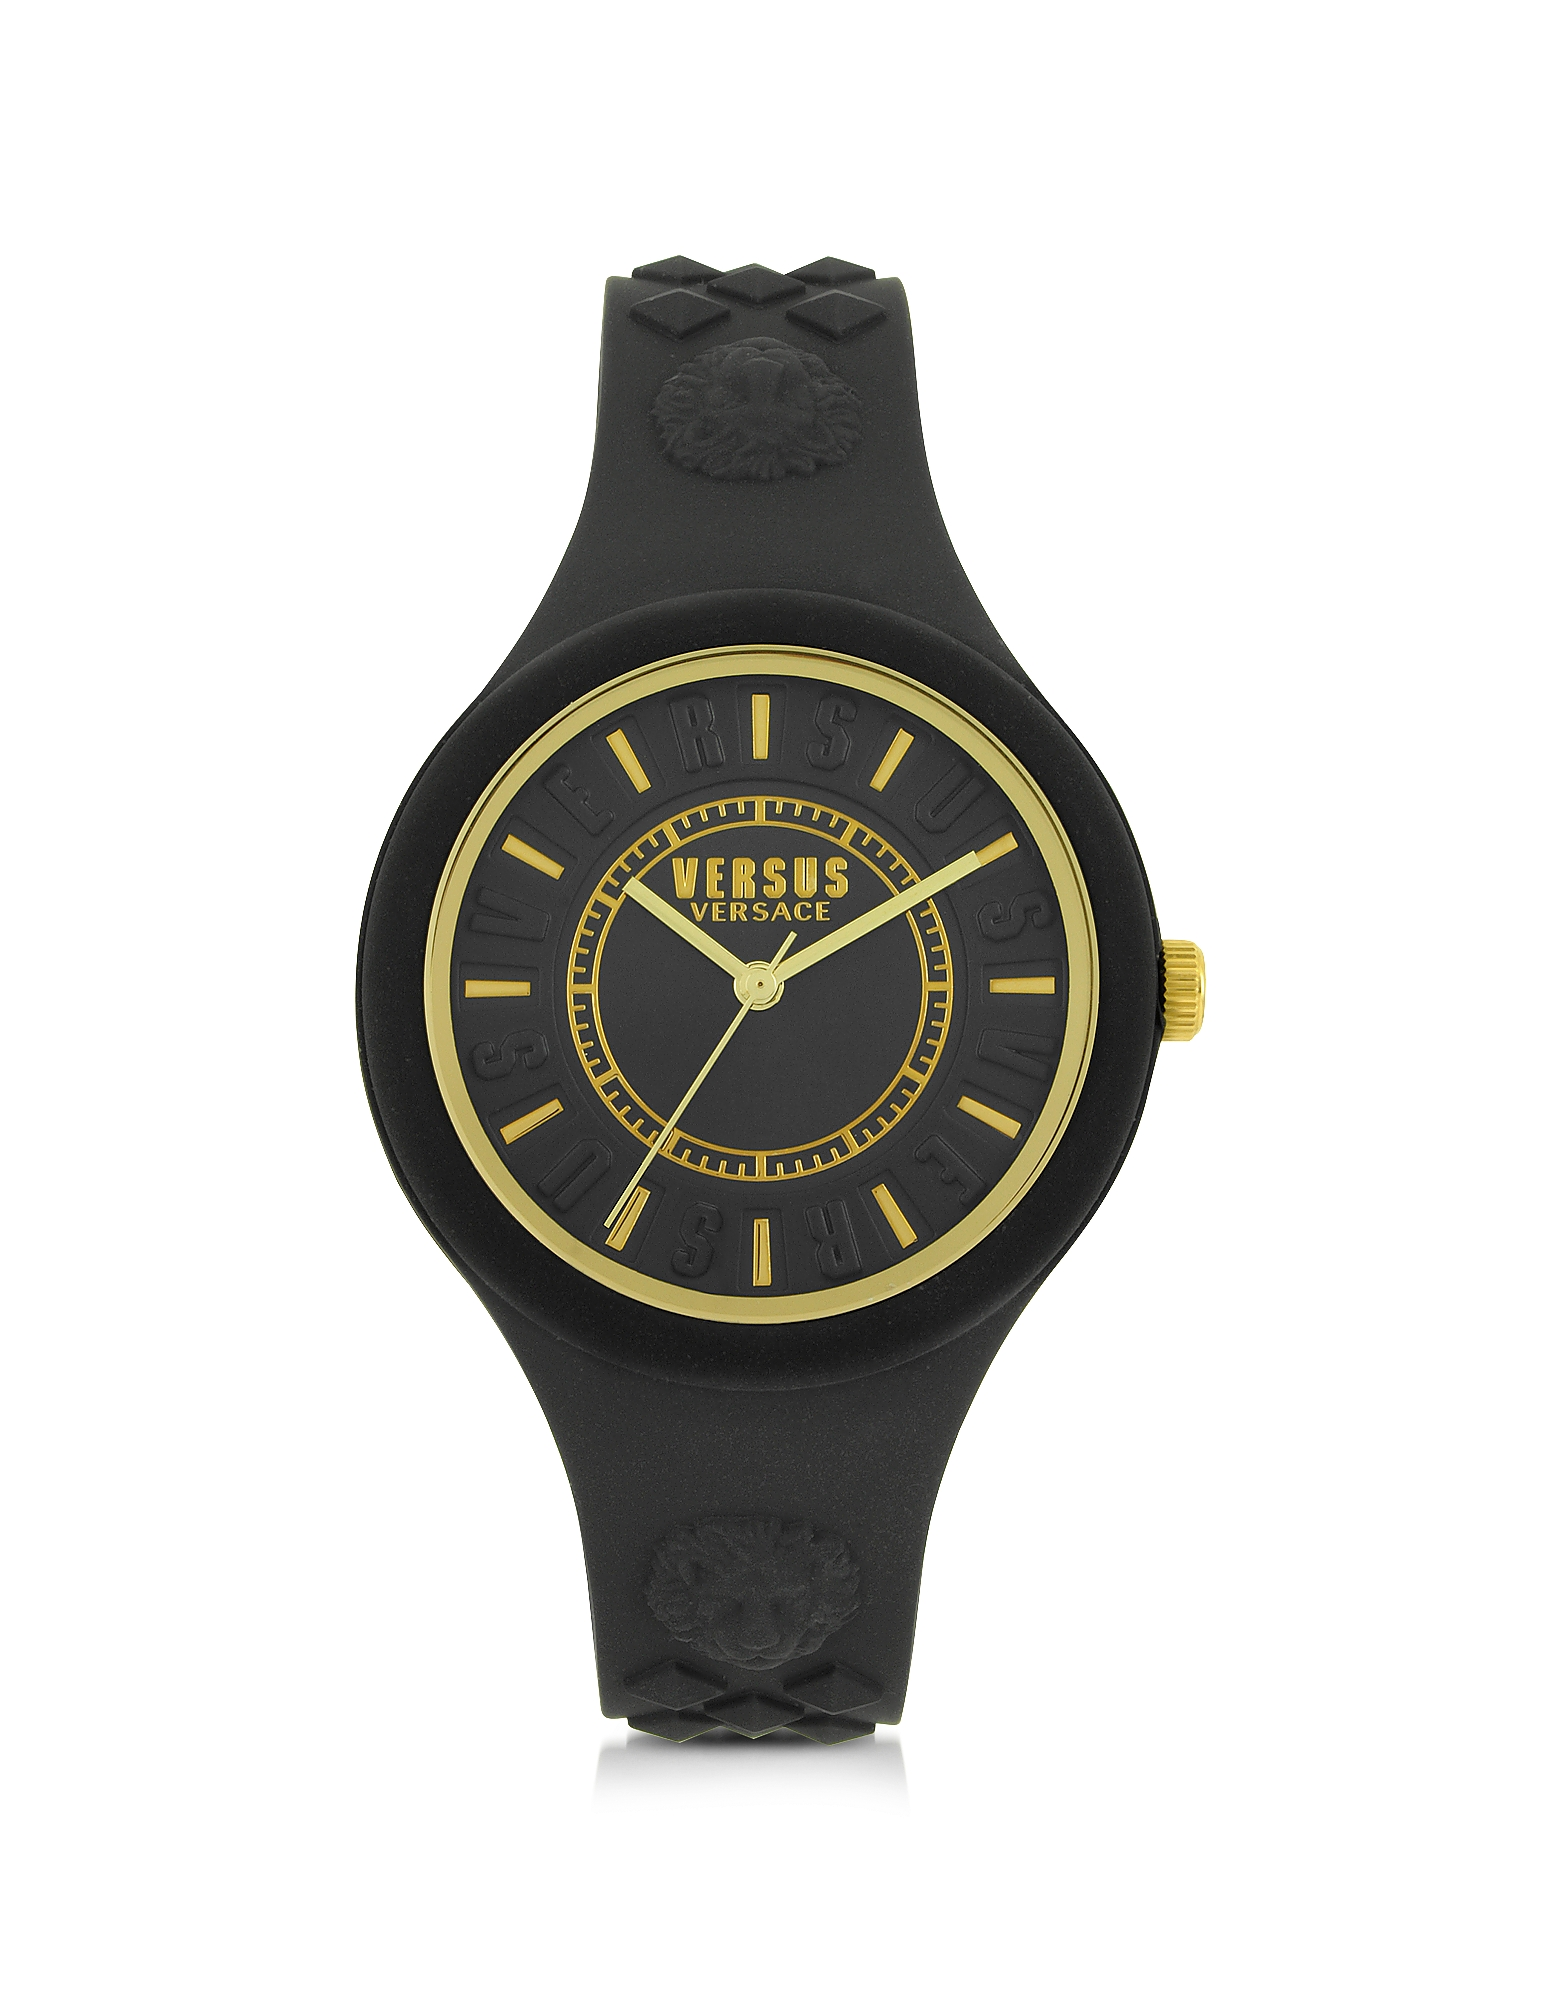 Versace Versus Women's Watches, Fire Island Silicon and Gold Tone Stainless Steel Women's Watch